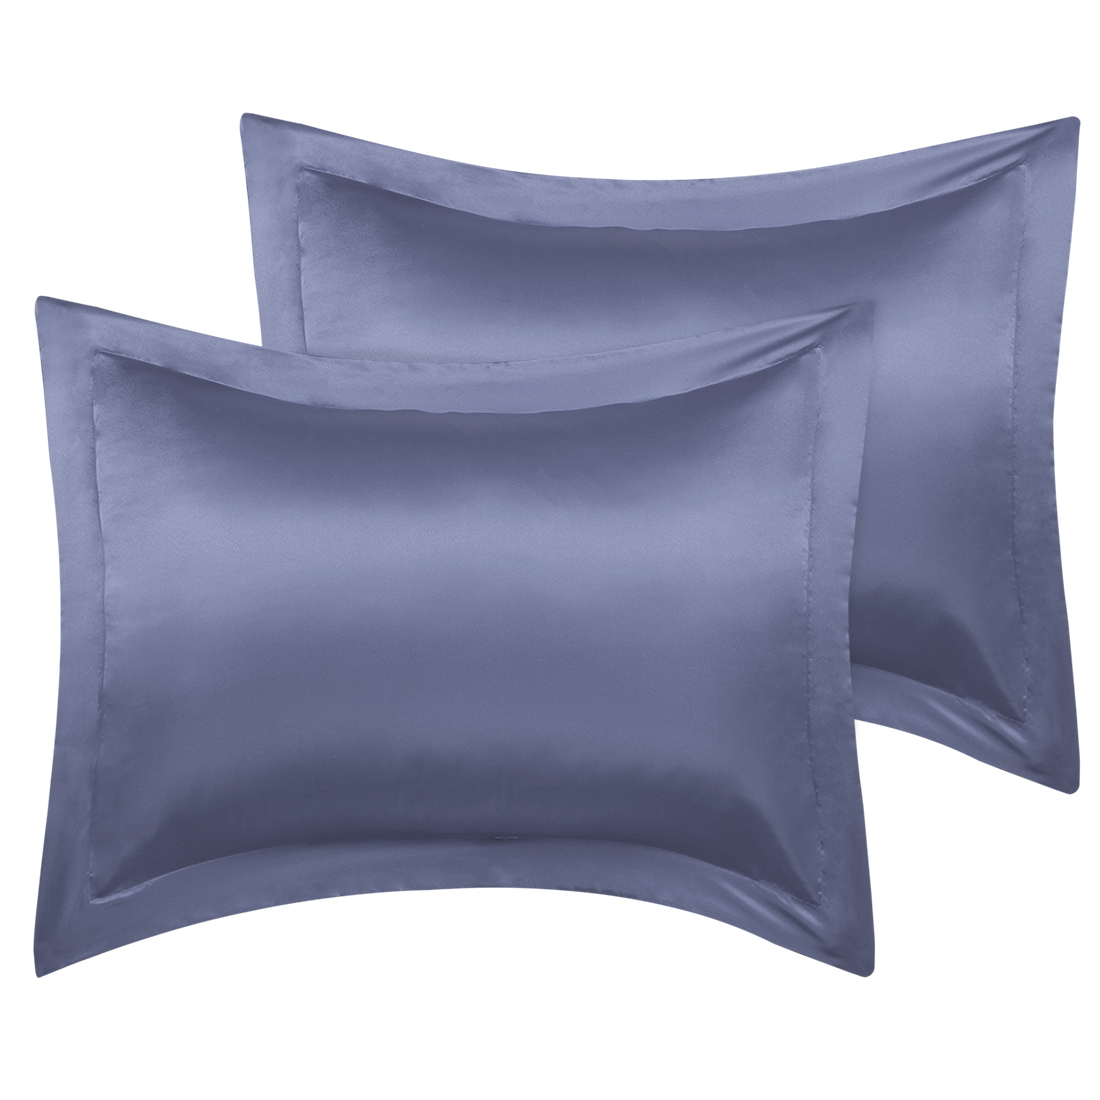 2 Pcs Slate Gray Pillow Shams Satin Pillow Cases Standard Oxford Pillowcases